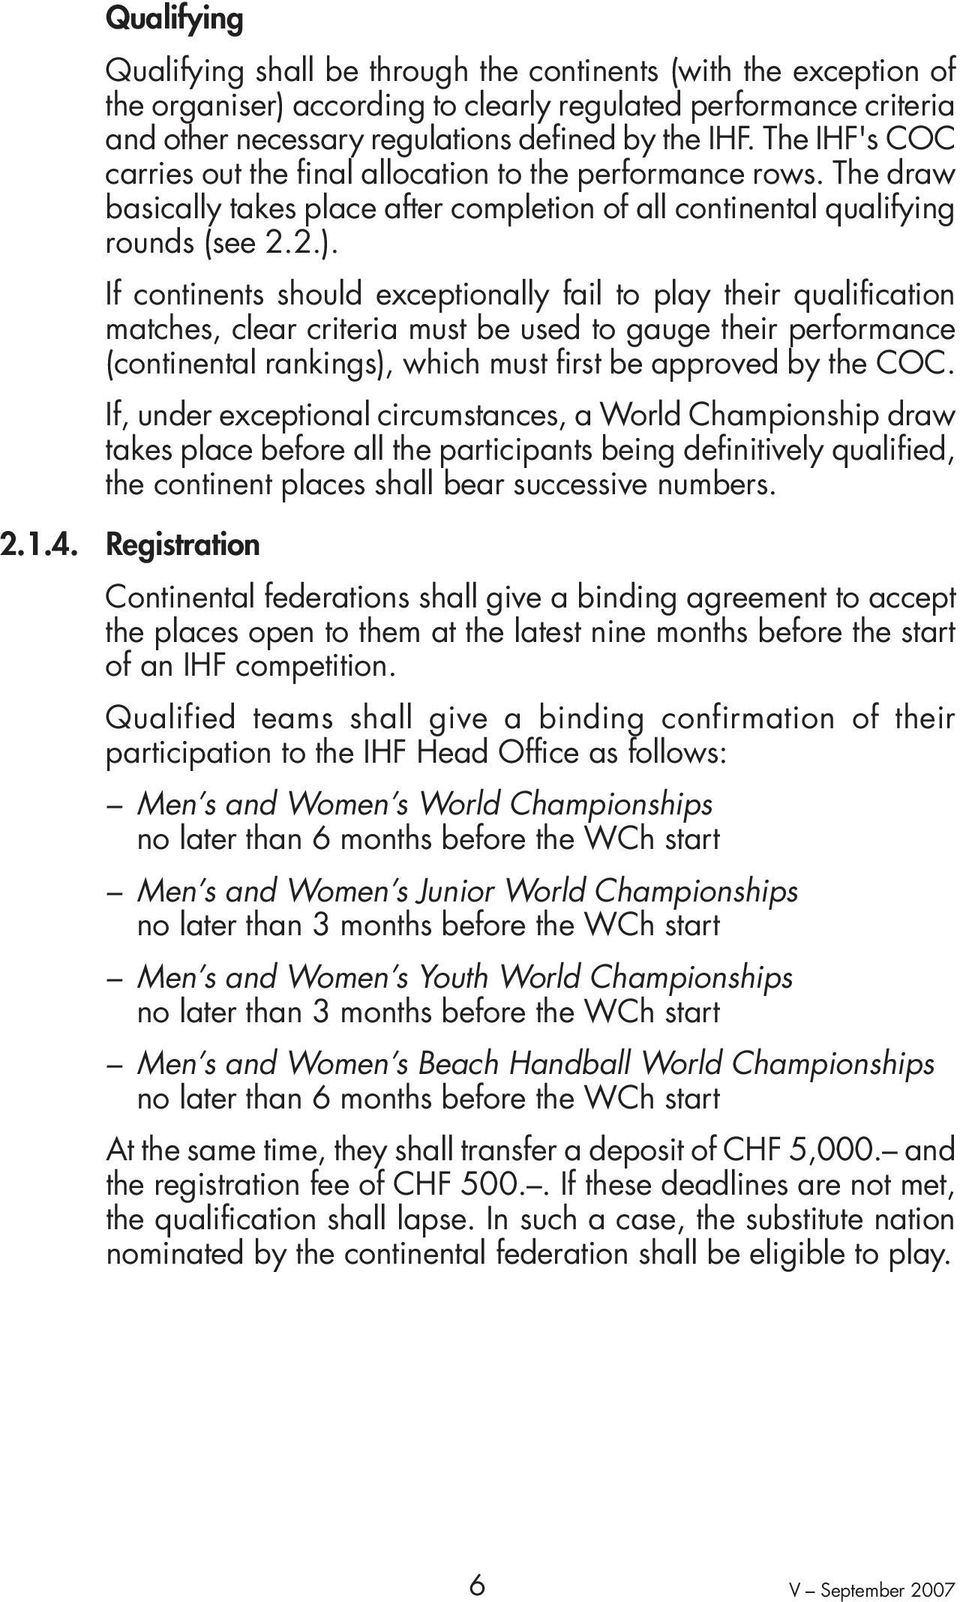 If continents should exceptionally fail to play their qualification matches, clear criteria must be used to gauge their performance (continental rankings), which must first be approved by the COC.